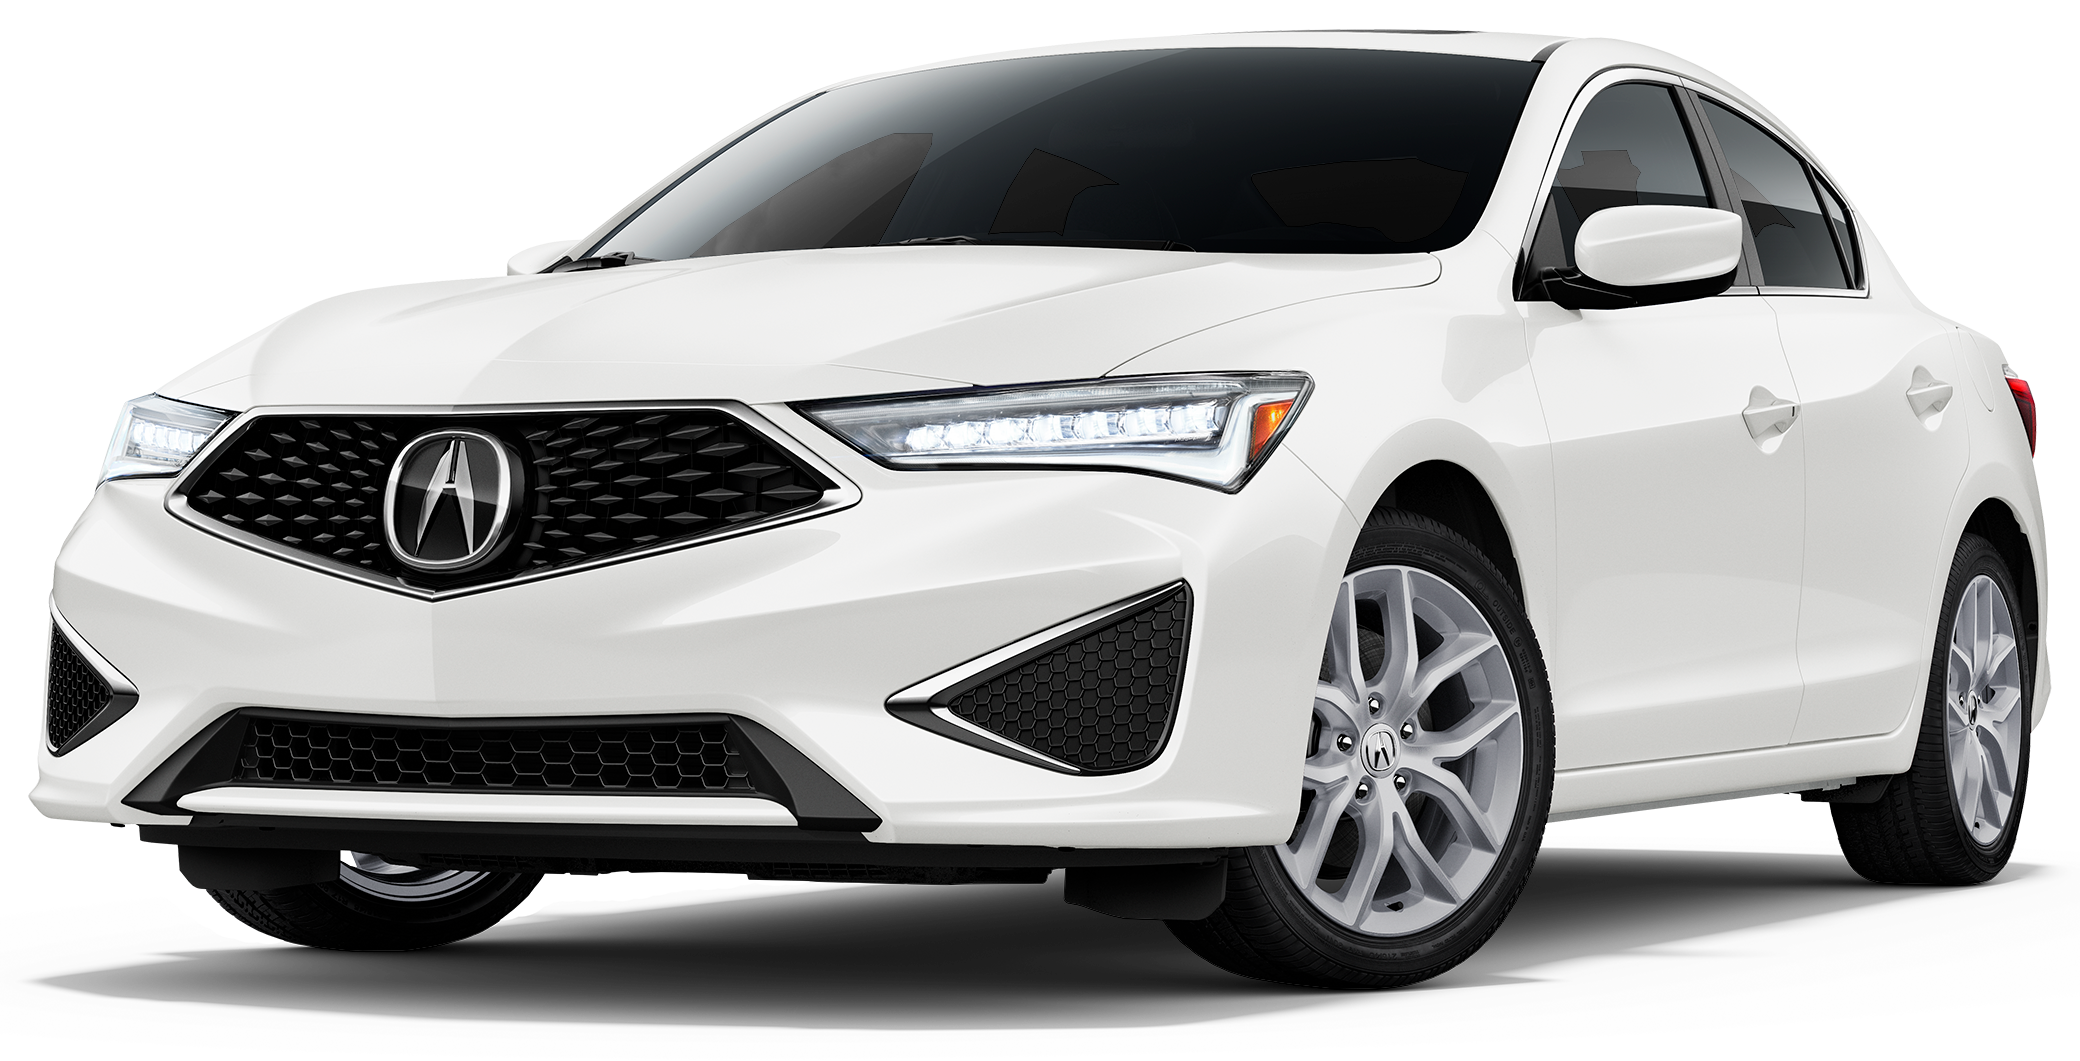 2019 Acura ILX Incentives, Specials & Offers In Towson MD